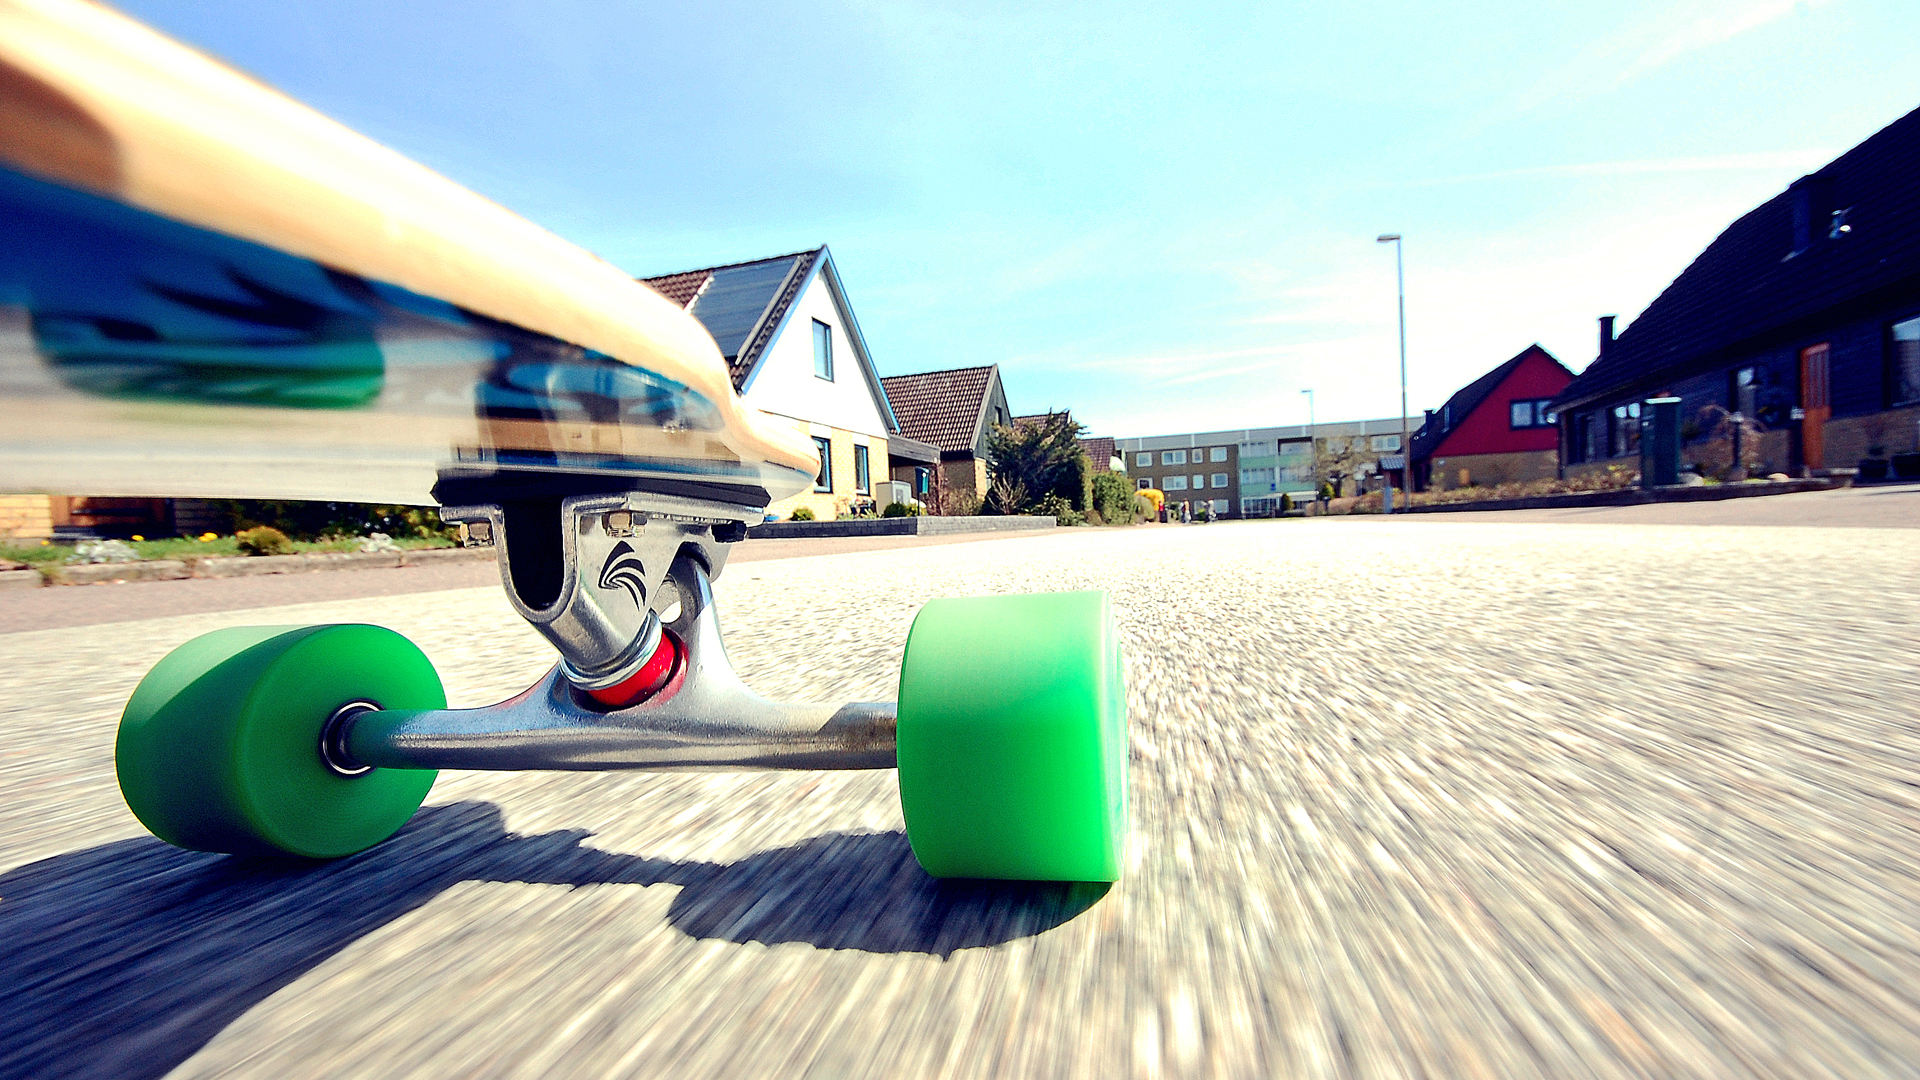 Cool Longboard Wallpaper